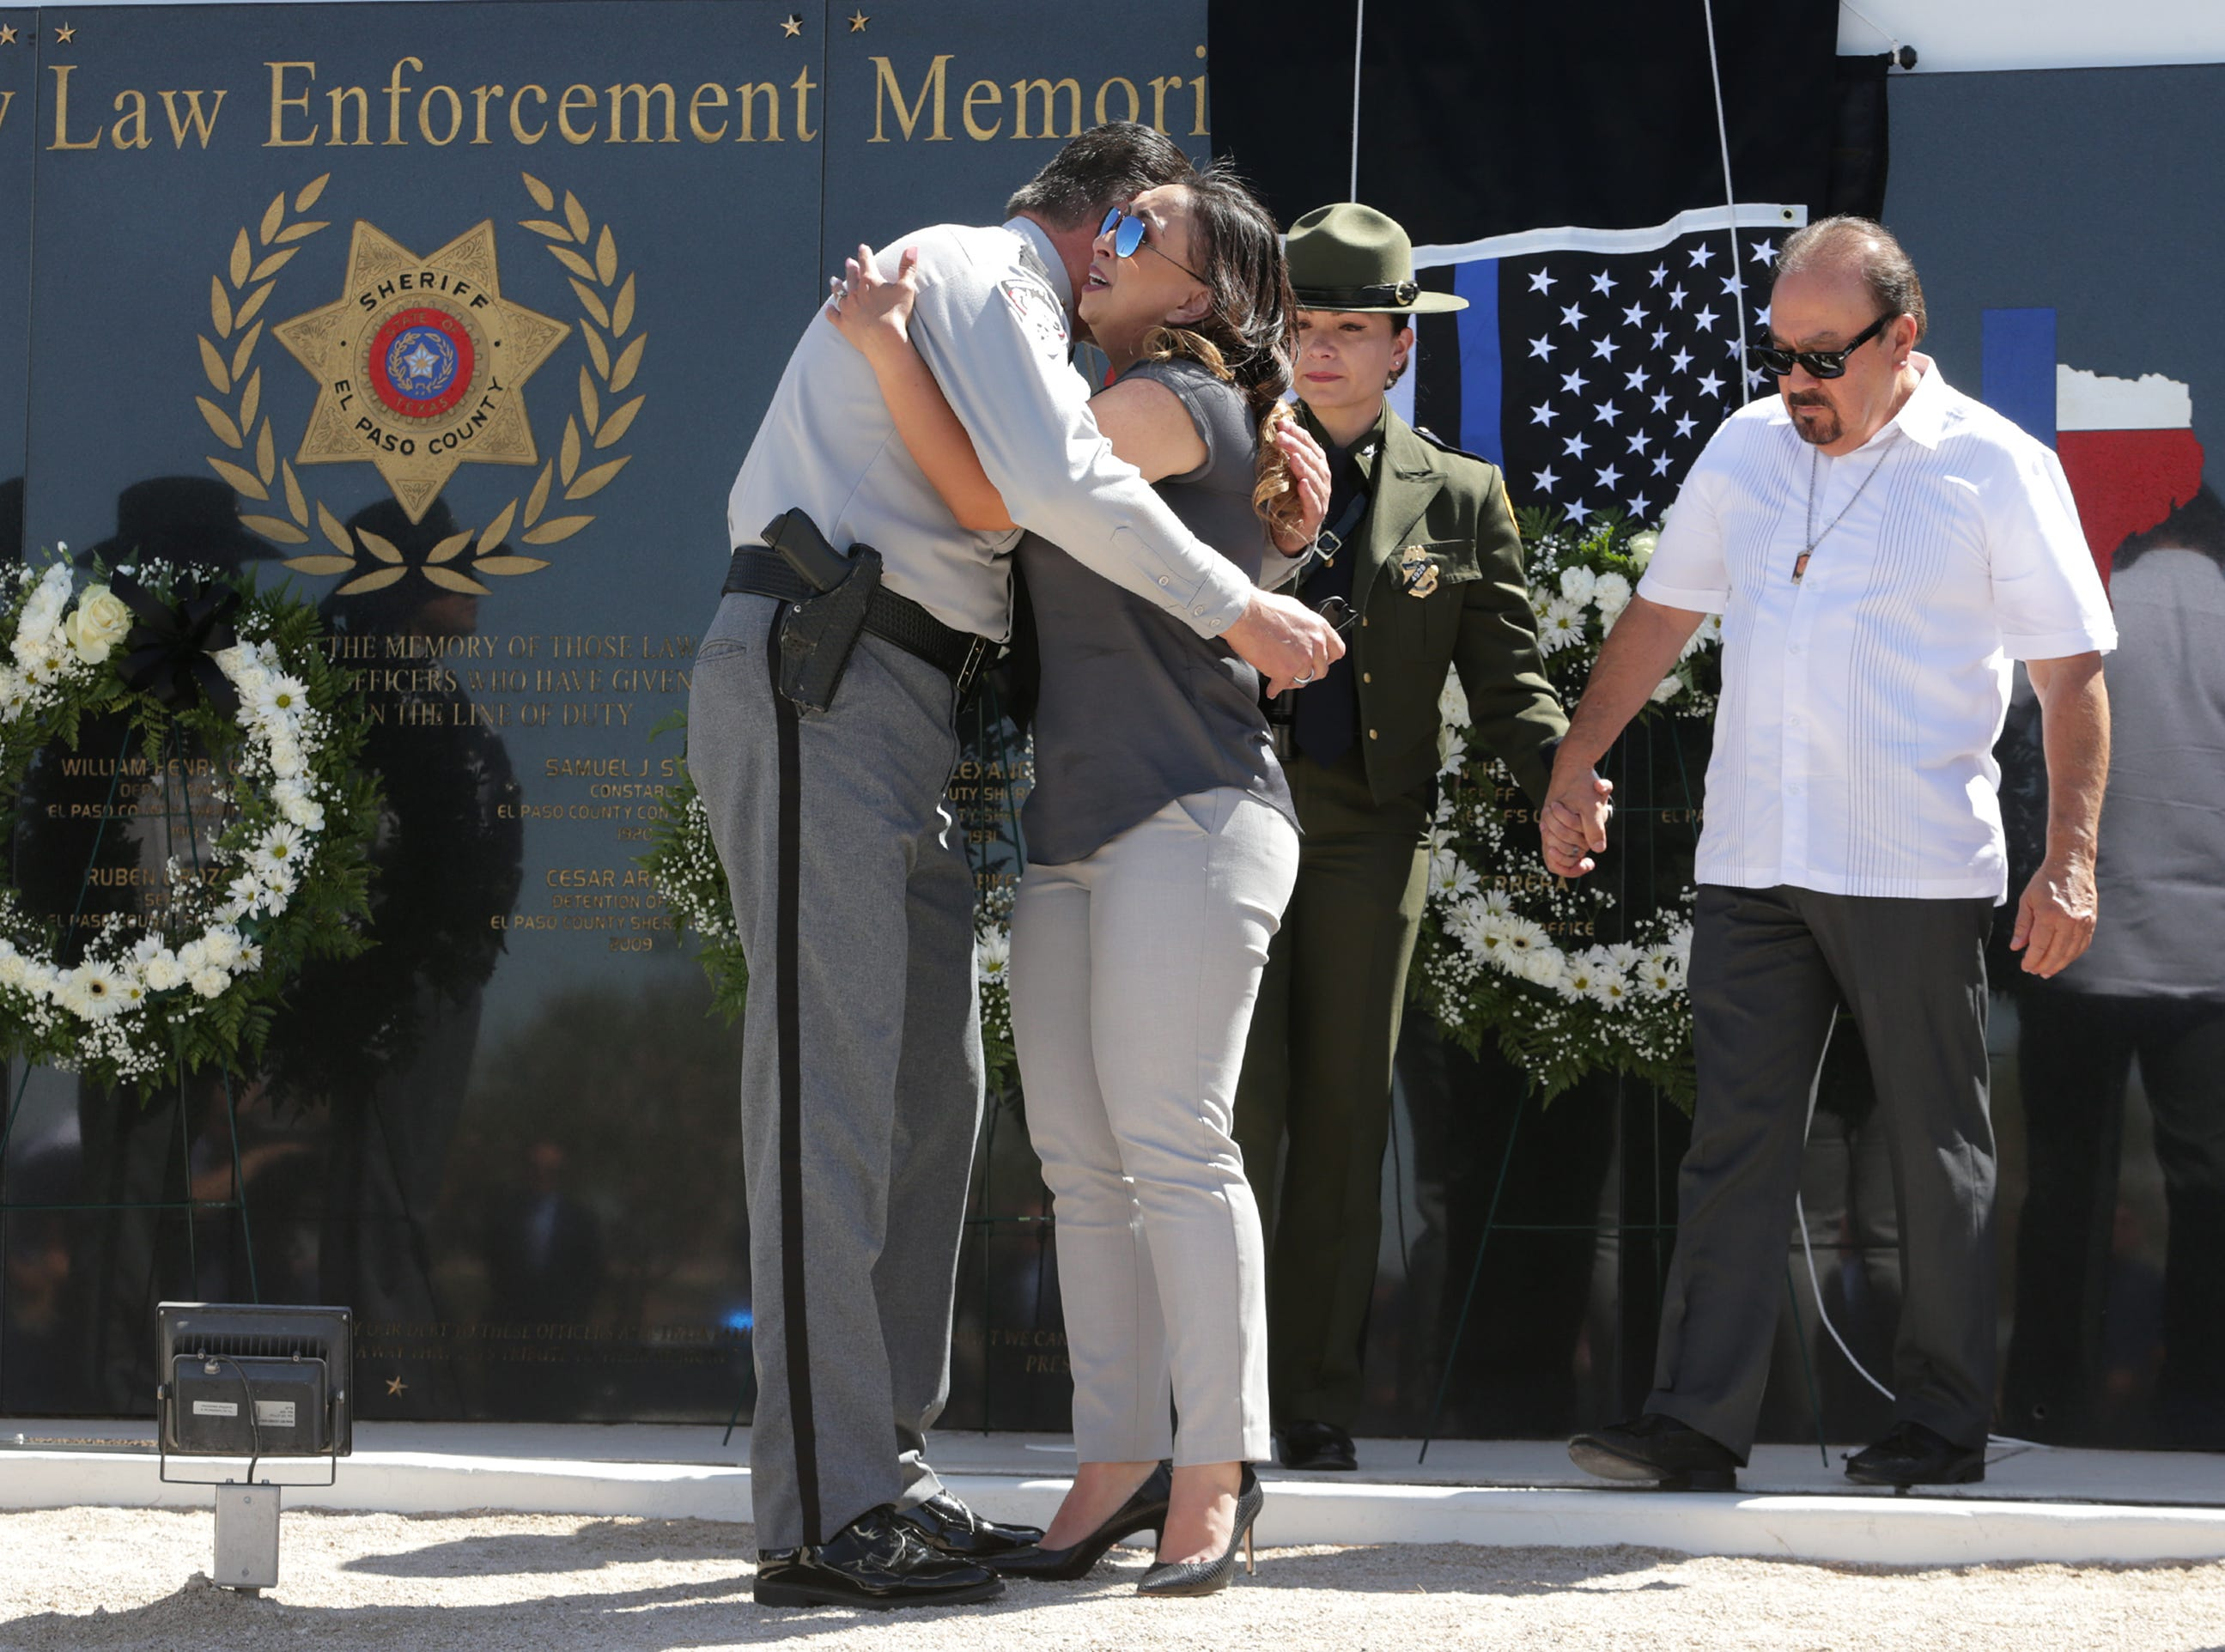 El Paso Sheriff Richard Wiles hugs Ashley Herrera, widow of Deputy Peter Herrera, who was killed in the line of duty, Tuesday, May 14, 2019, at the County Law Enforcement Memorial at the Sheriff's Office's headquarters in East El Paso. Fifteen law enforcement officers are honored on the memorial.